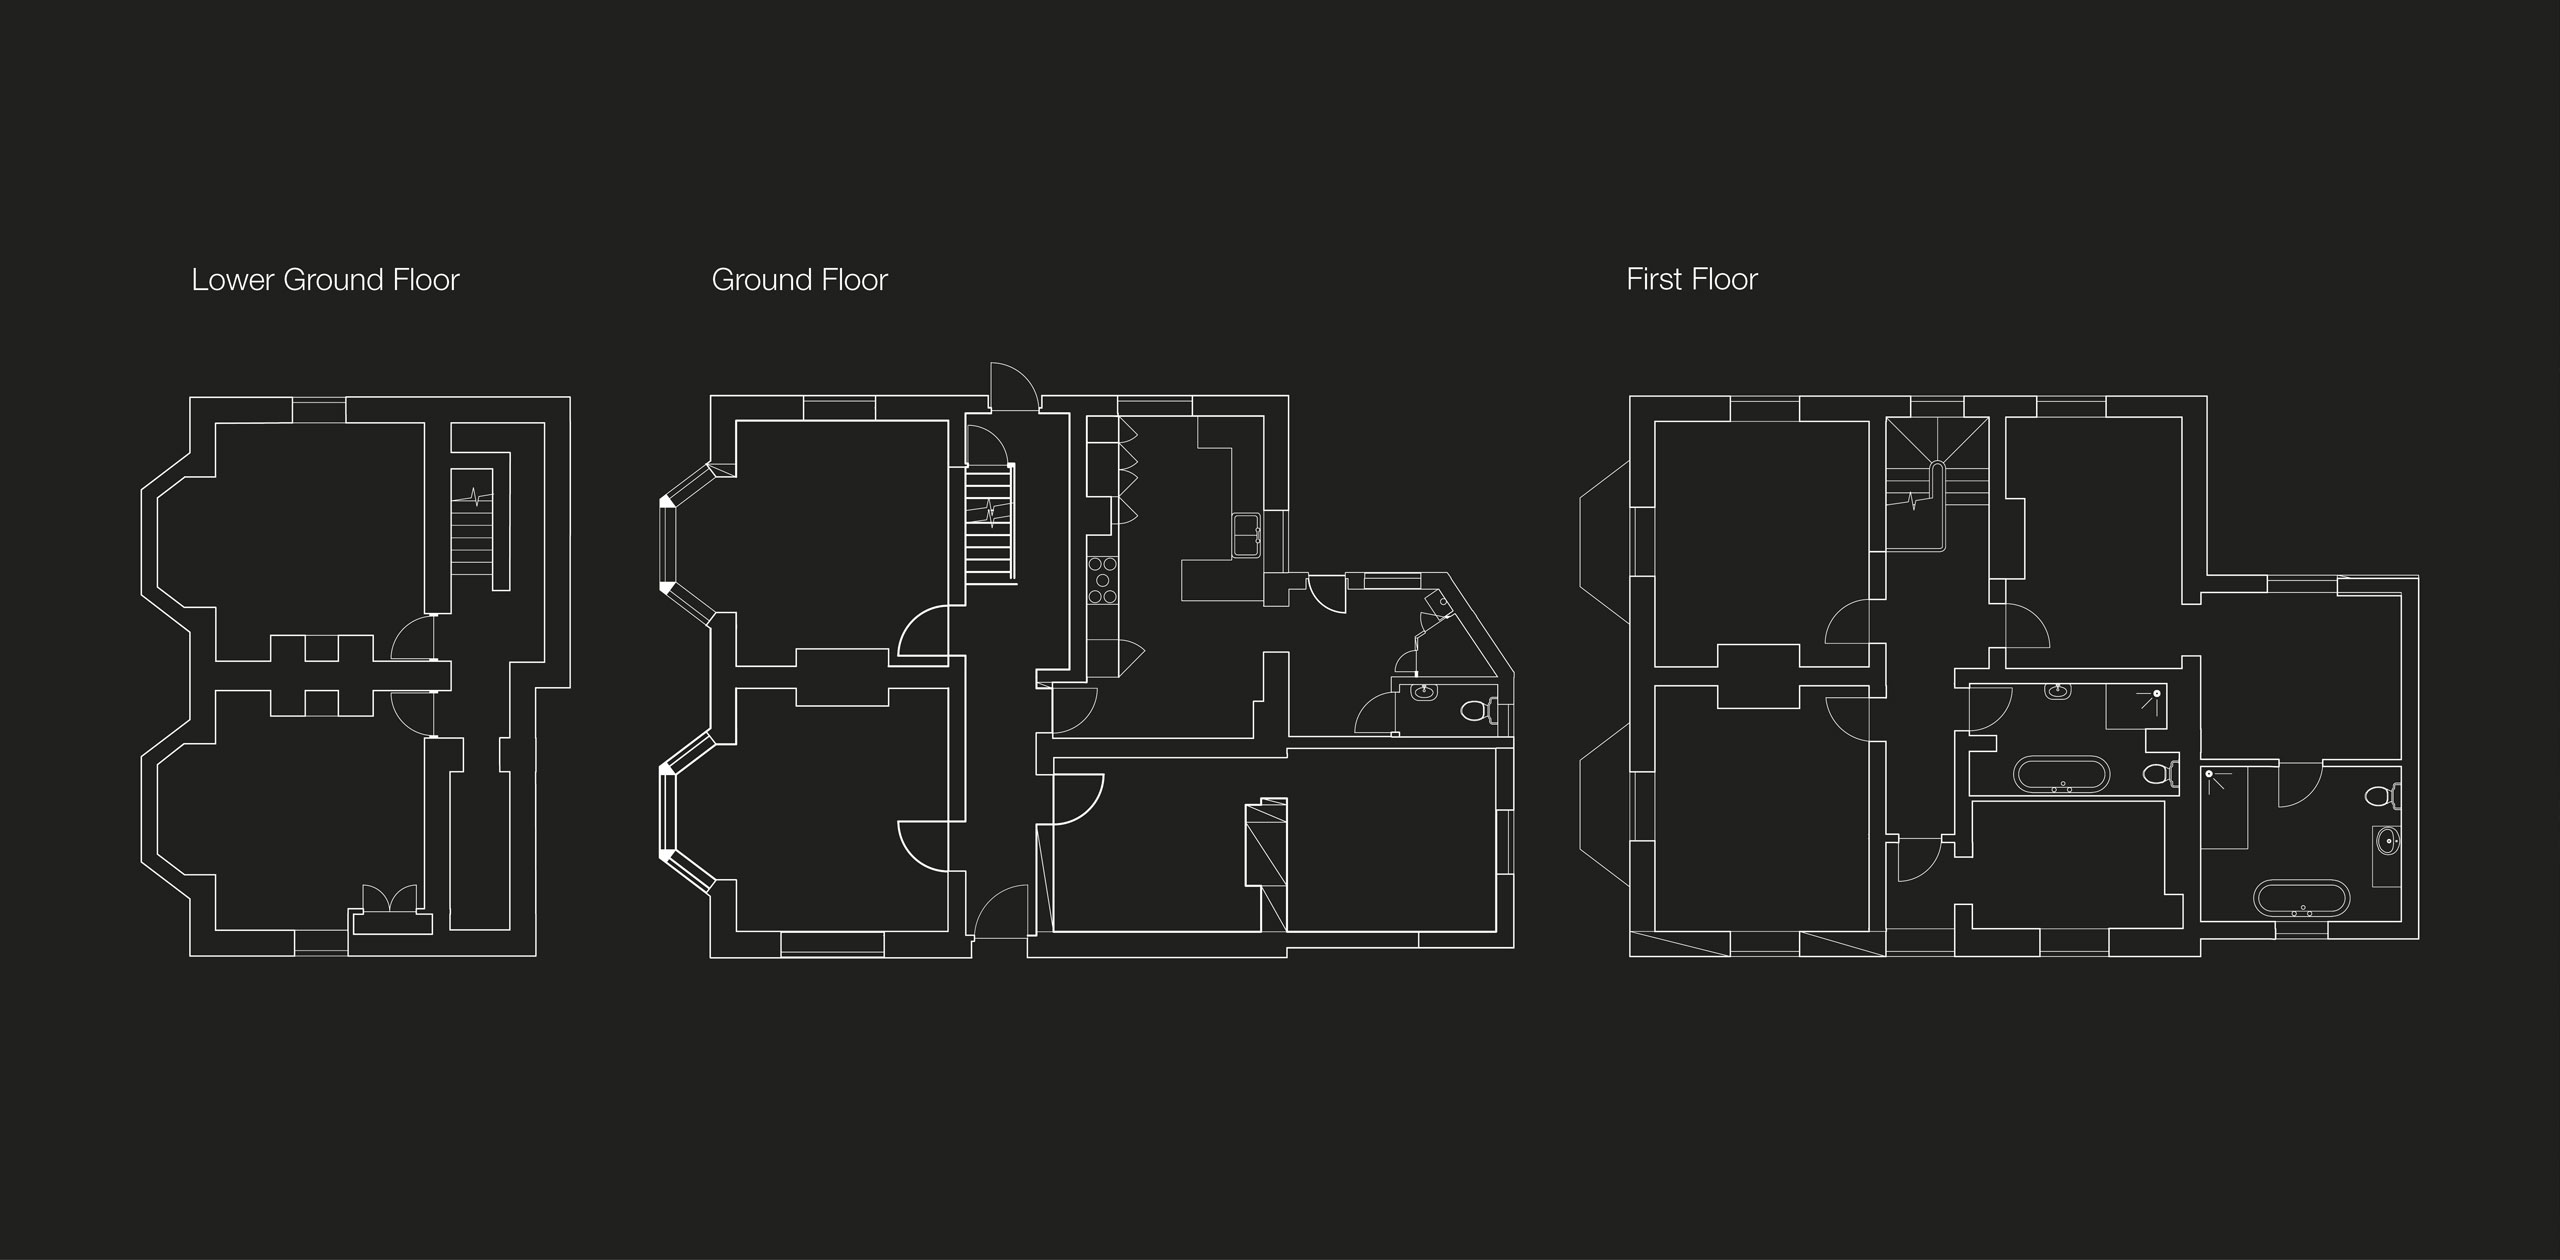 Battenhall Road - Floorplan